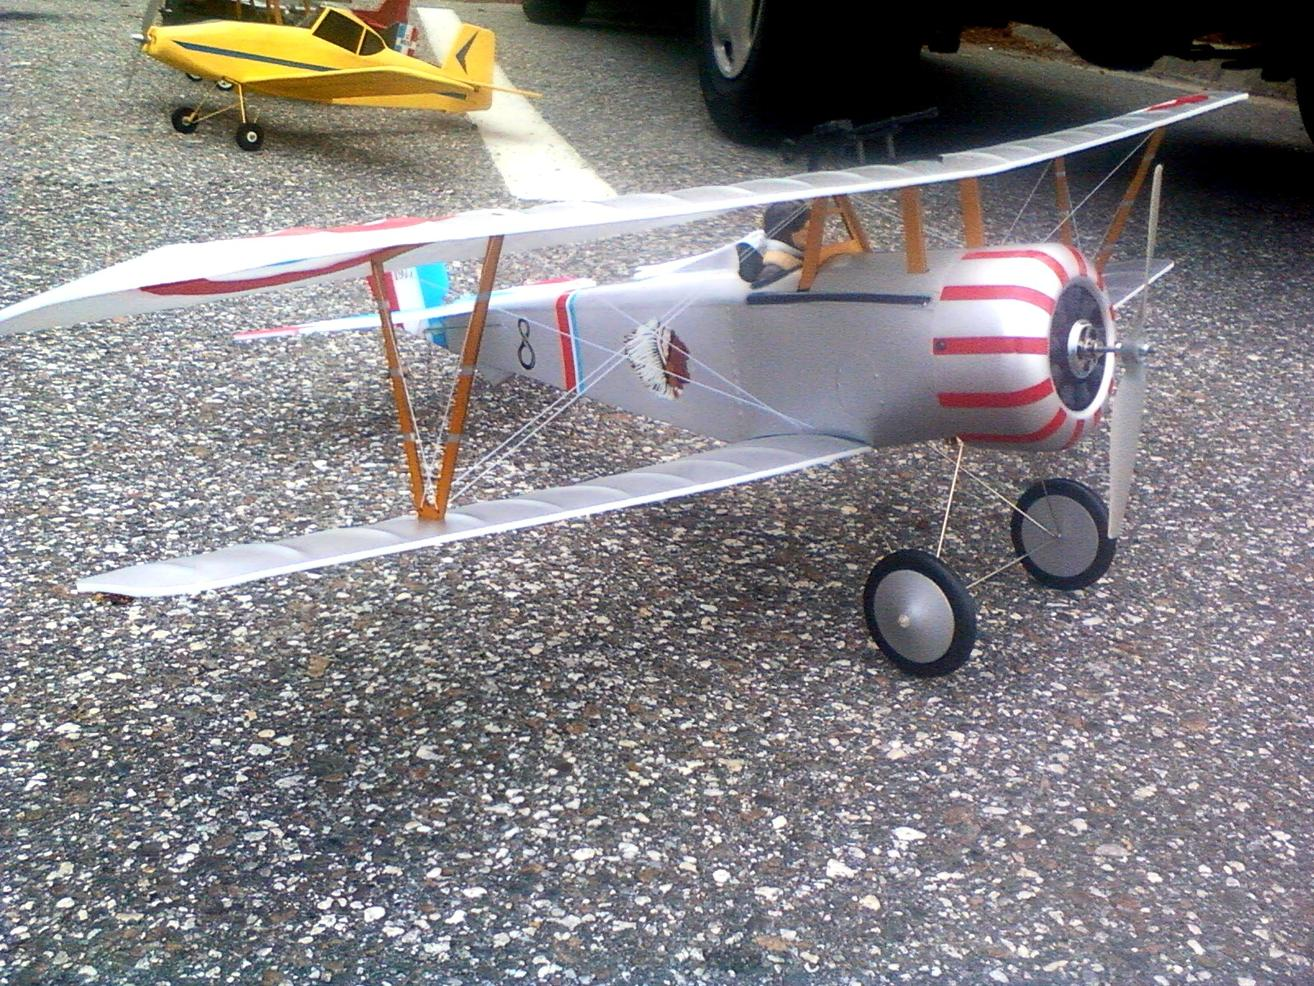 This is the E-flight Nieuport I won in a raffle 2 years ago and never got time to build. I gave it to my friend Chris for his birthday and he built it.